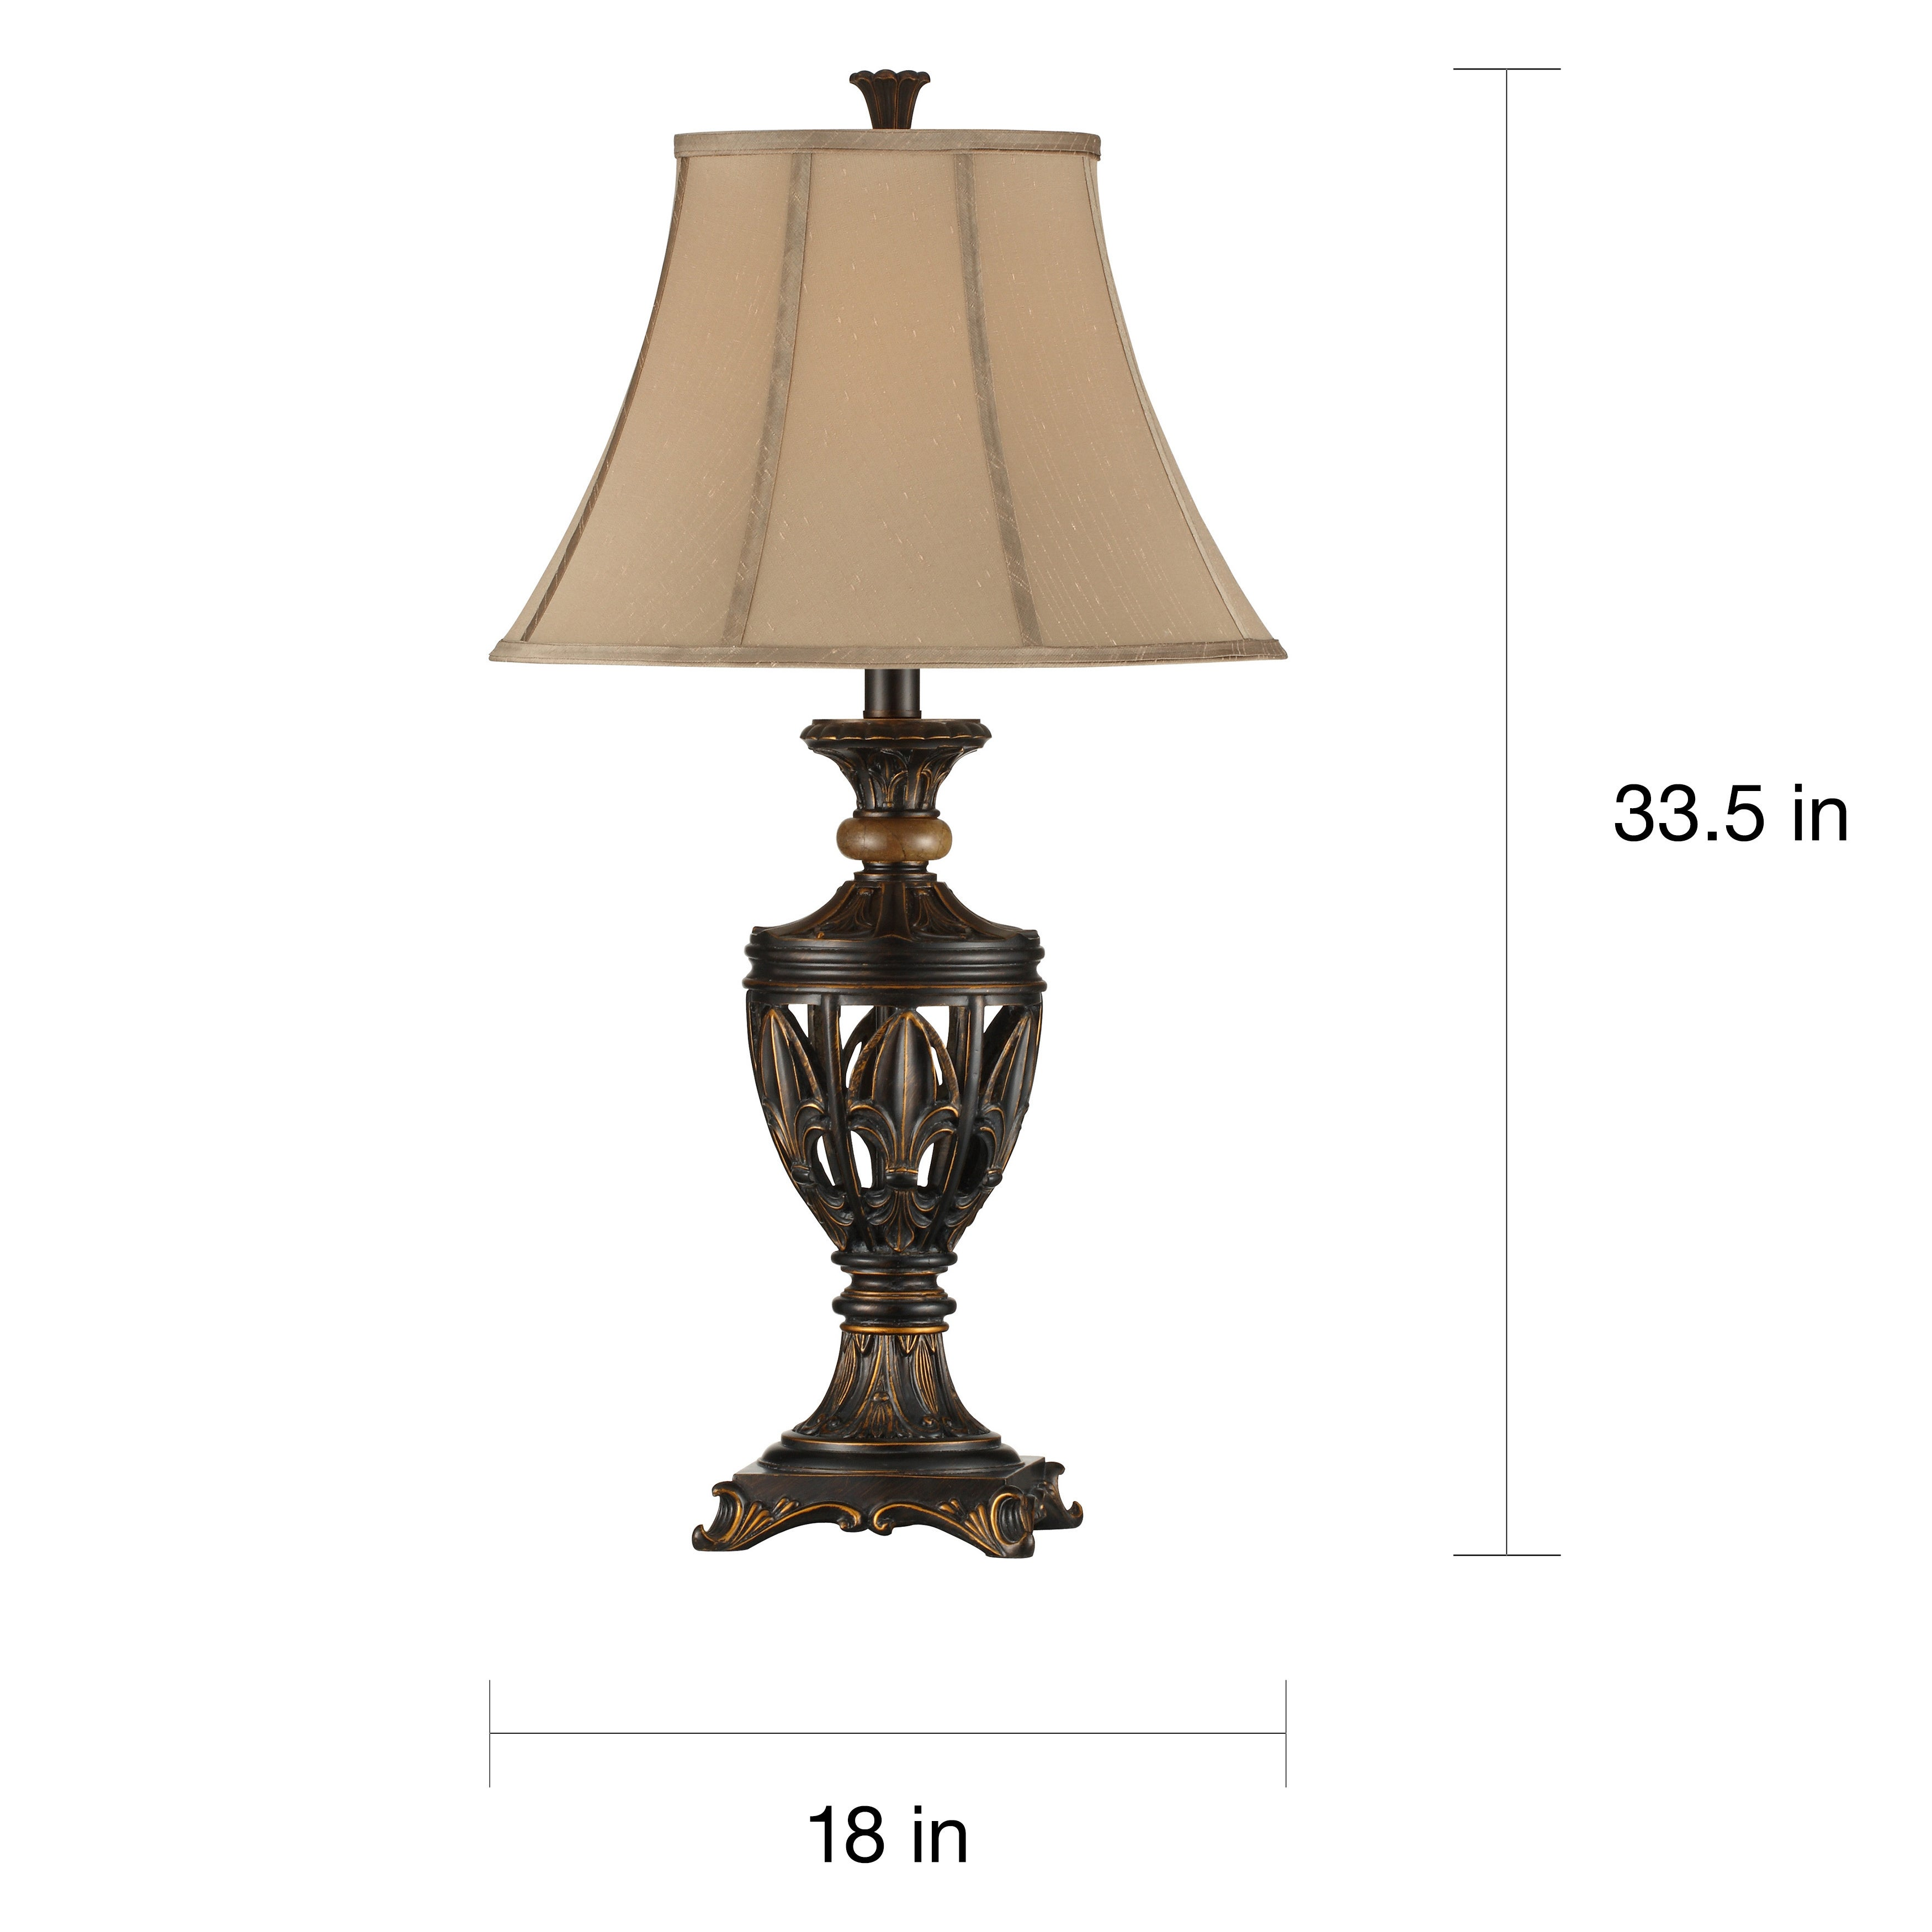 del lighting wonderfull tiffany rey fleur shade world best floor shades style base mission lis unique table of lamp de lamps